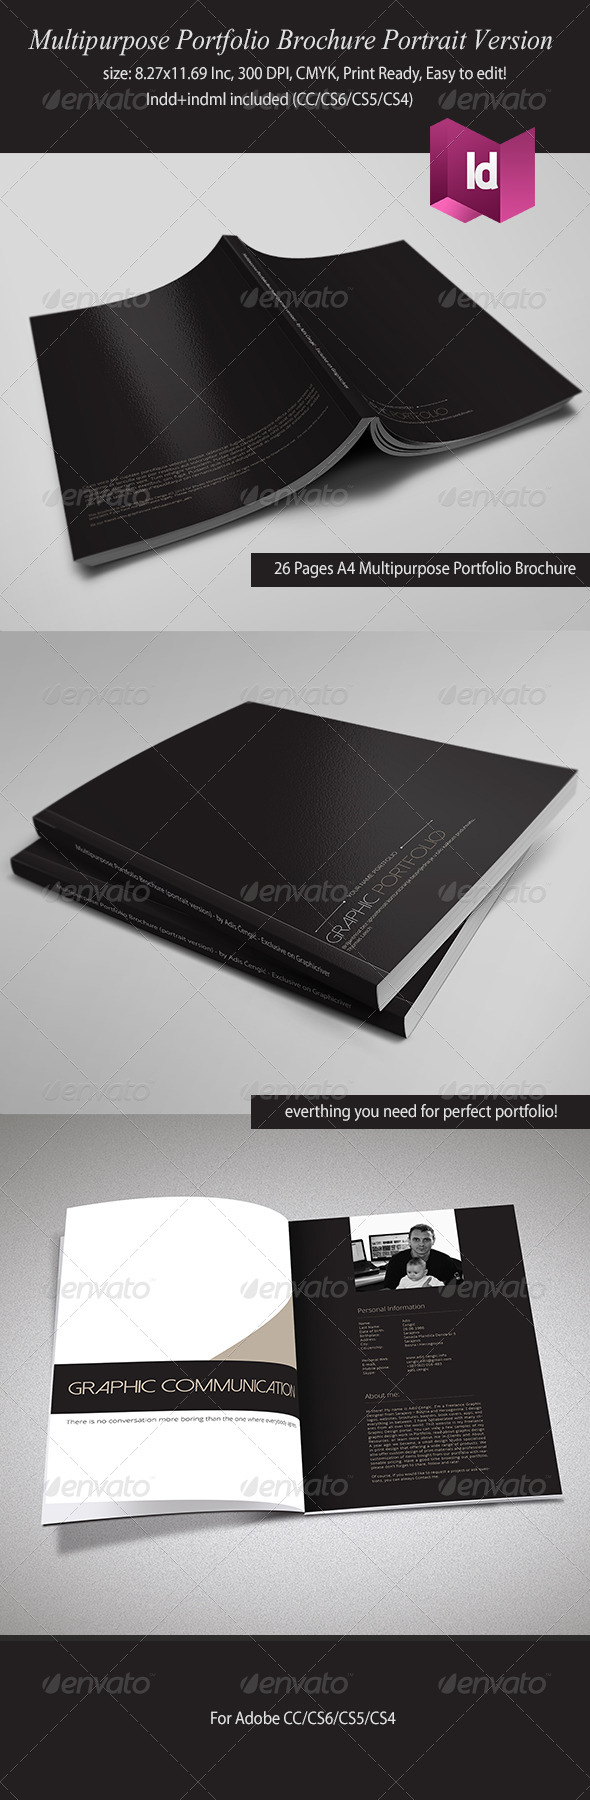 Multipurpose Portfolio Brochure Portrait Version - Catalogs Brochures